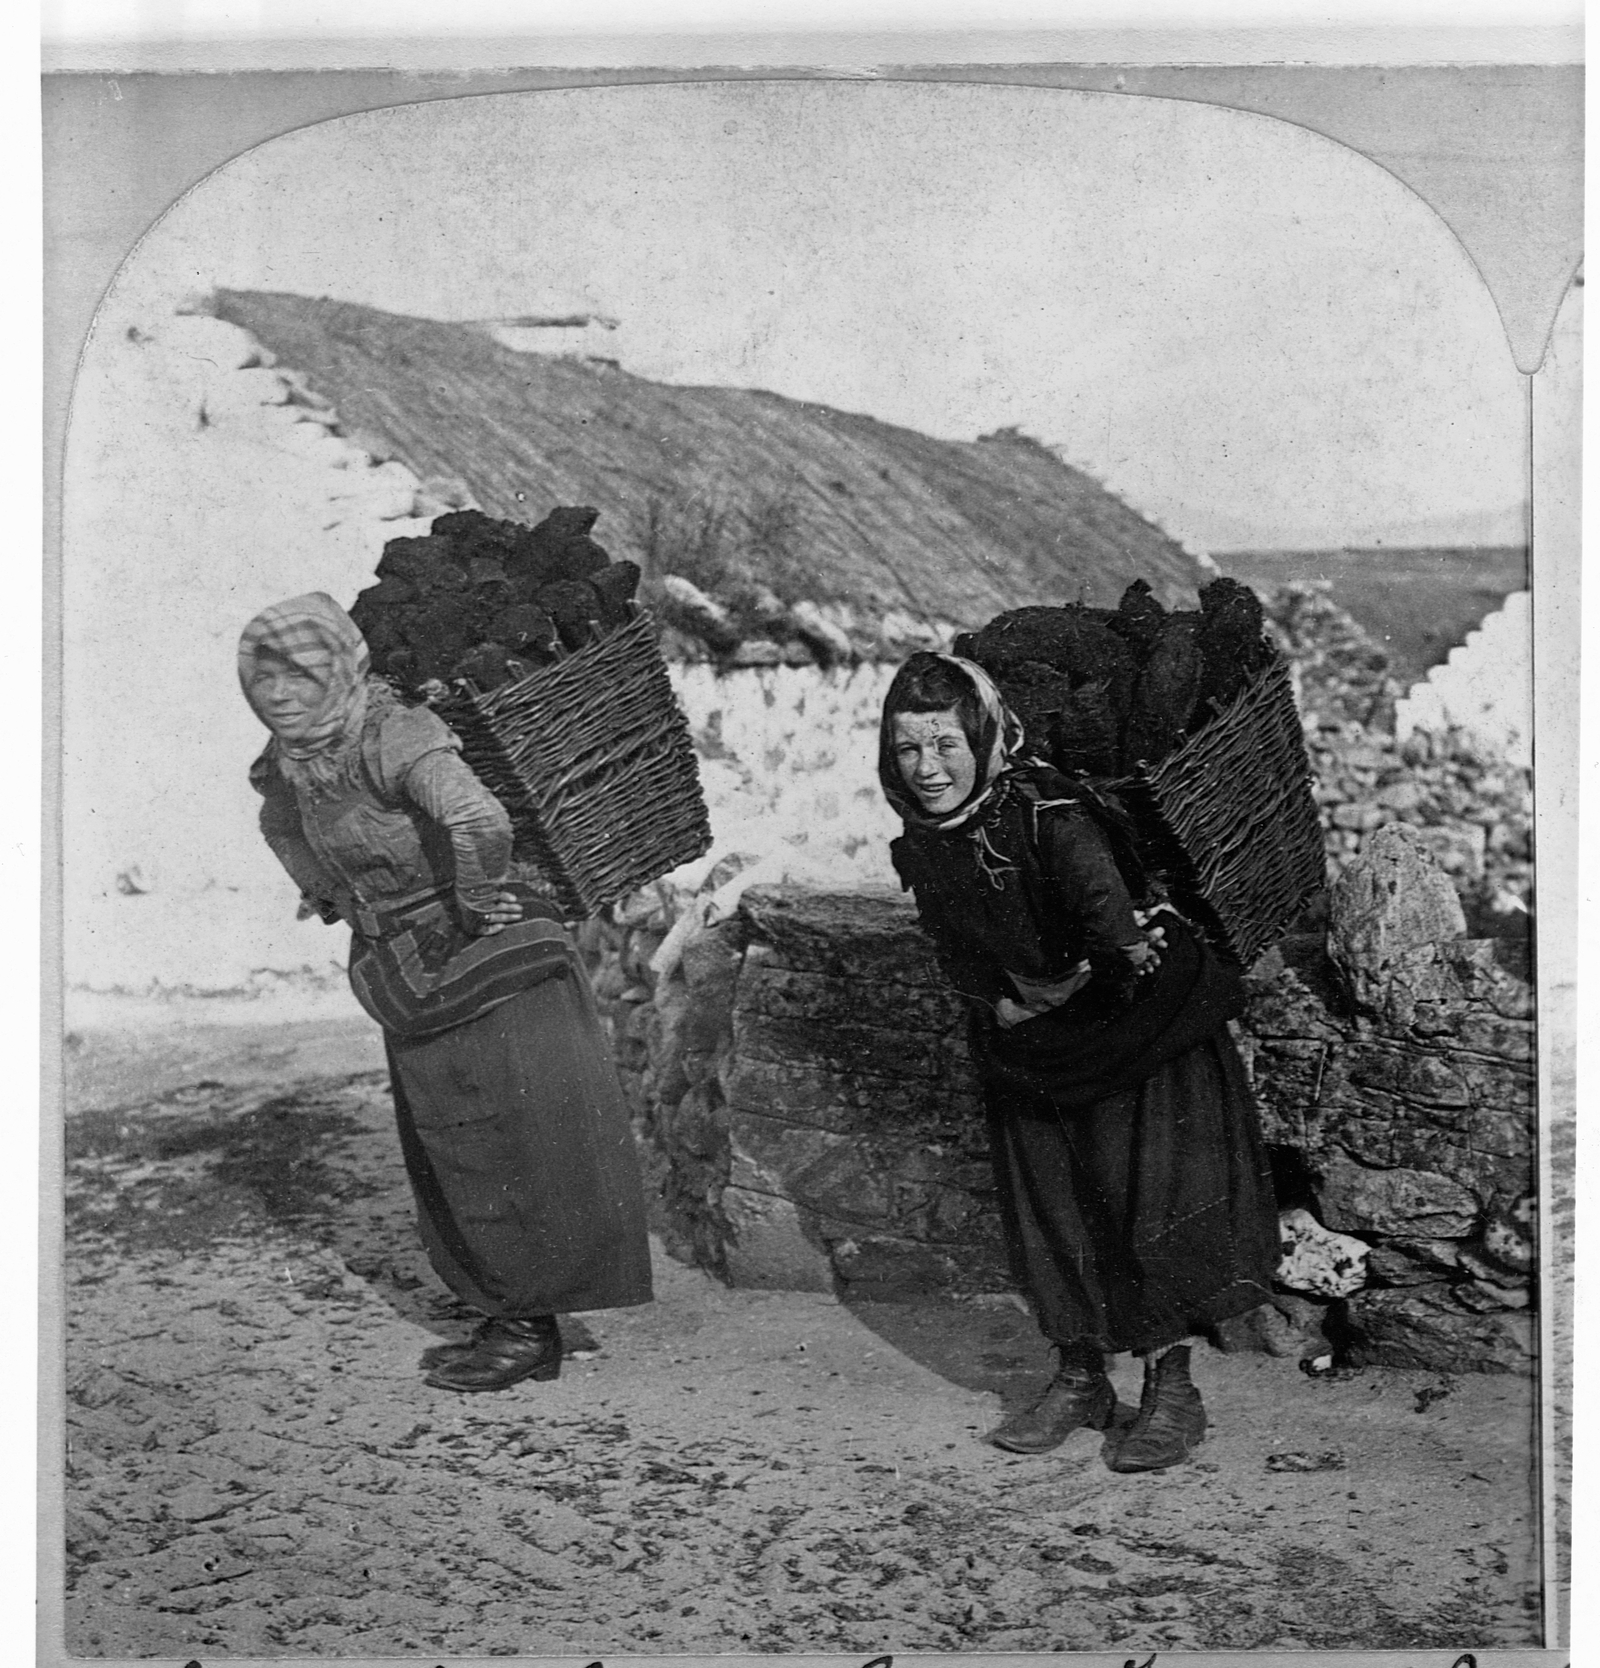 Image - Bringing in the turf, Dooagh, Achill, 1903 (Pic: Getty Images)